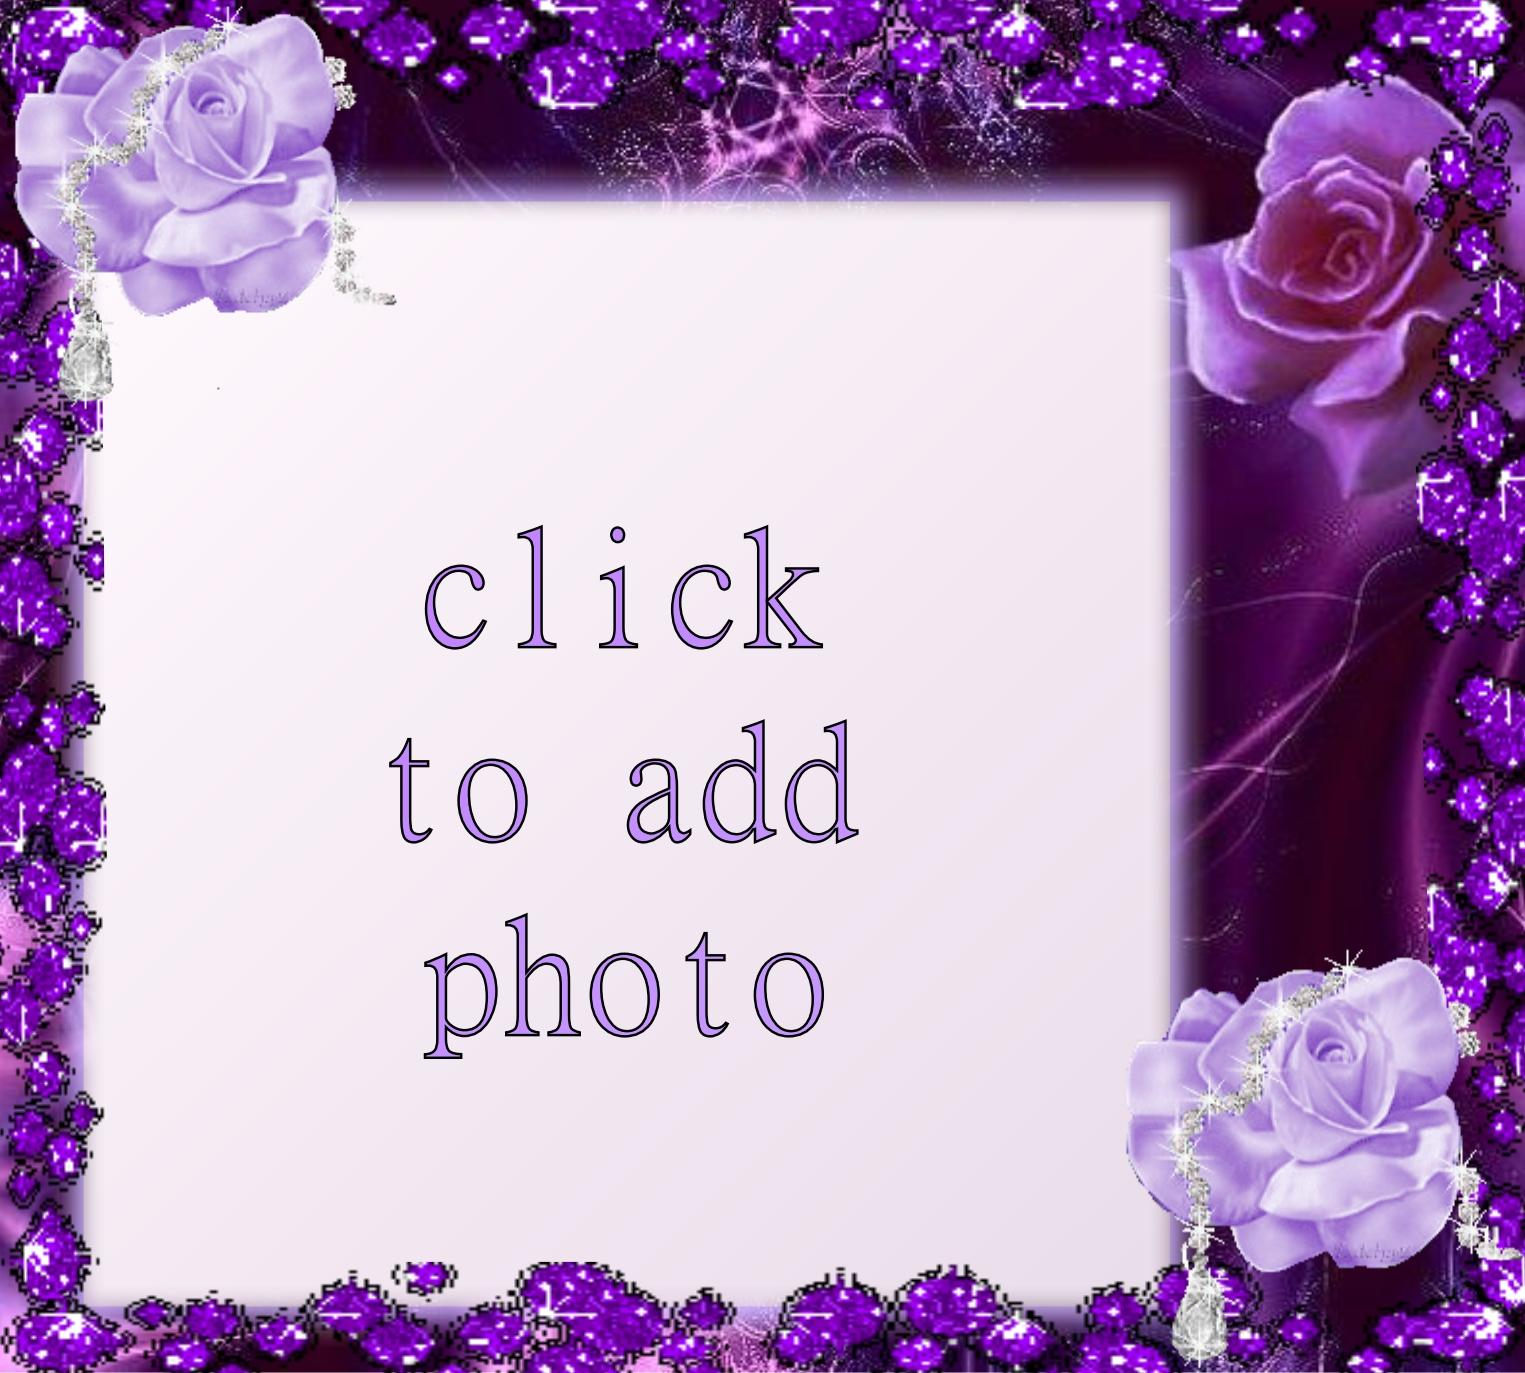 Imikimi Zo - Picture Frames - Lavender ROSE_GLITTER - norafg62